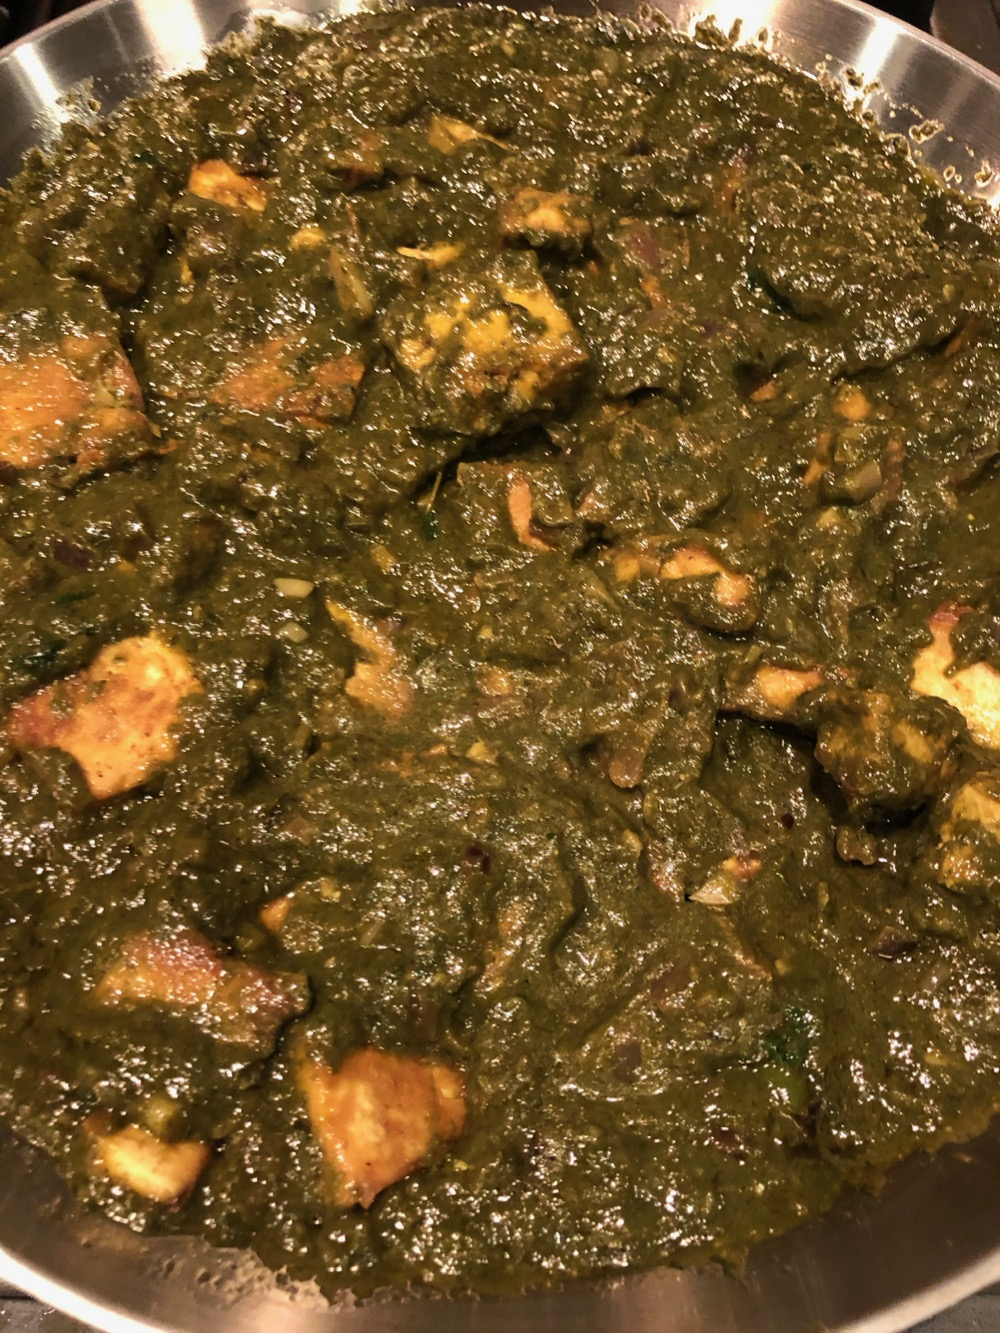 Palak tofu is ready!